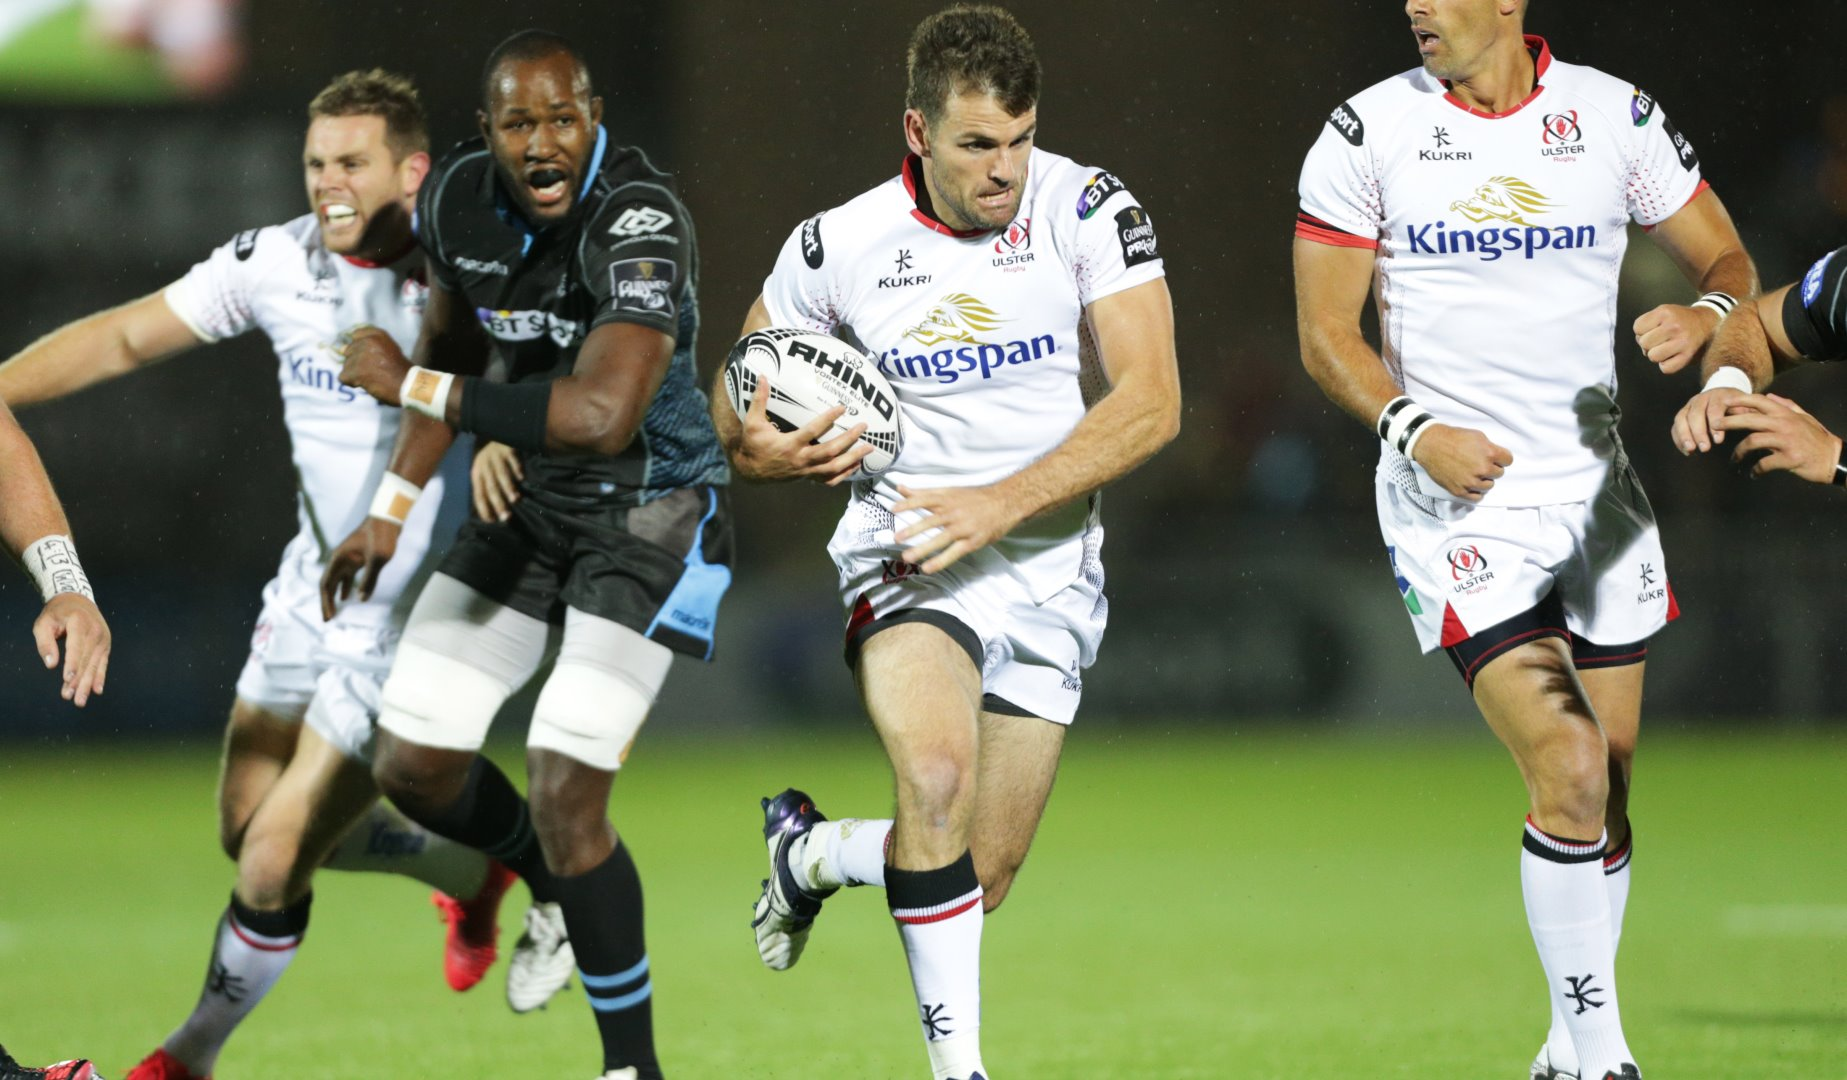 LionsWatch: Payne gives insight into centre role